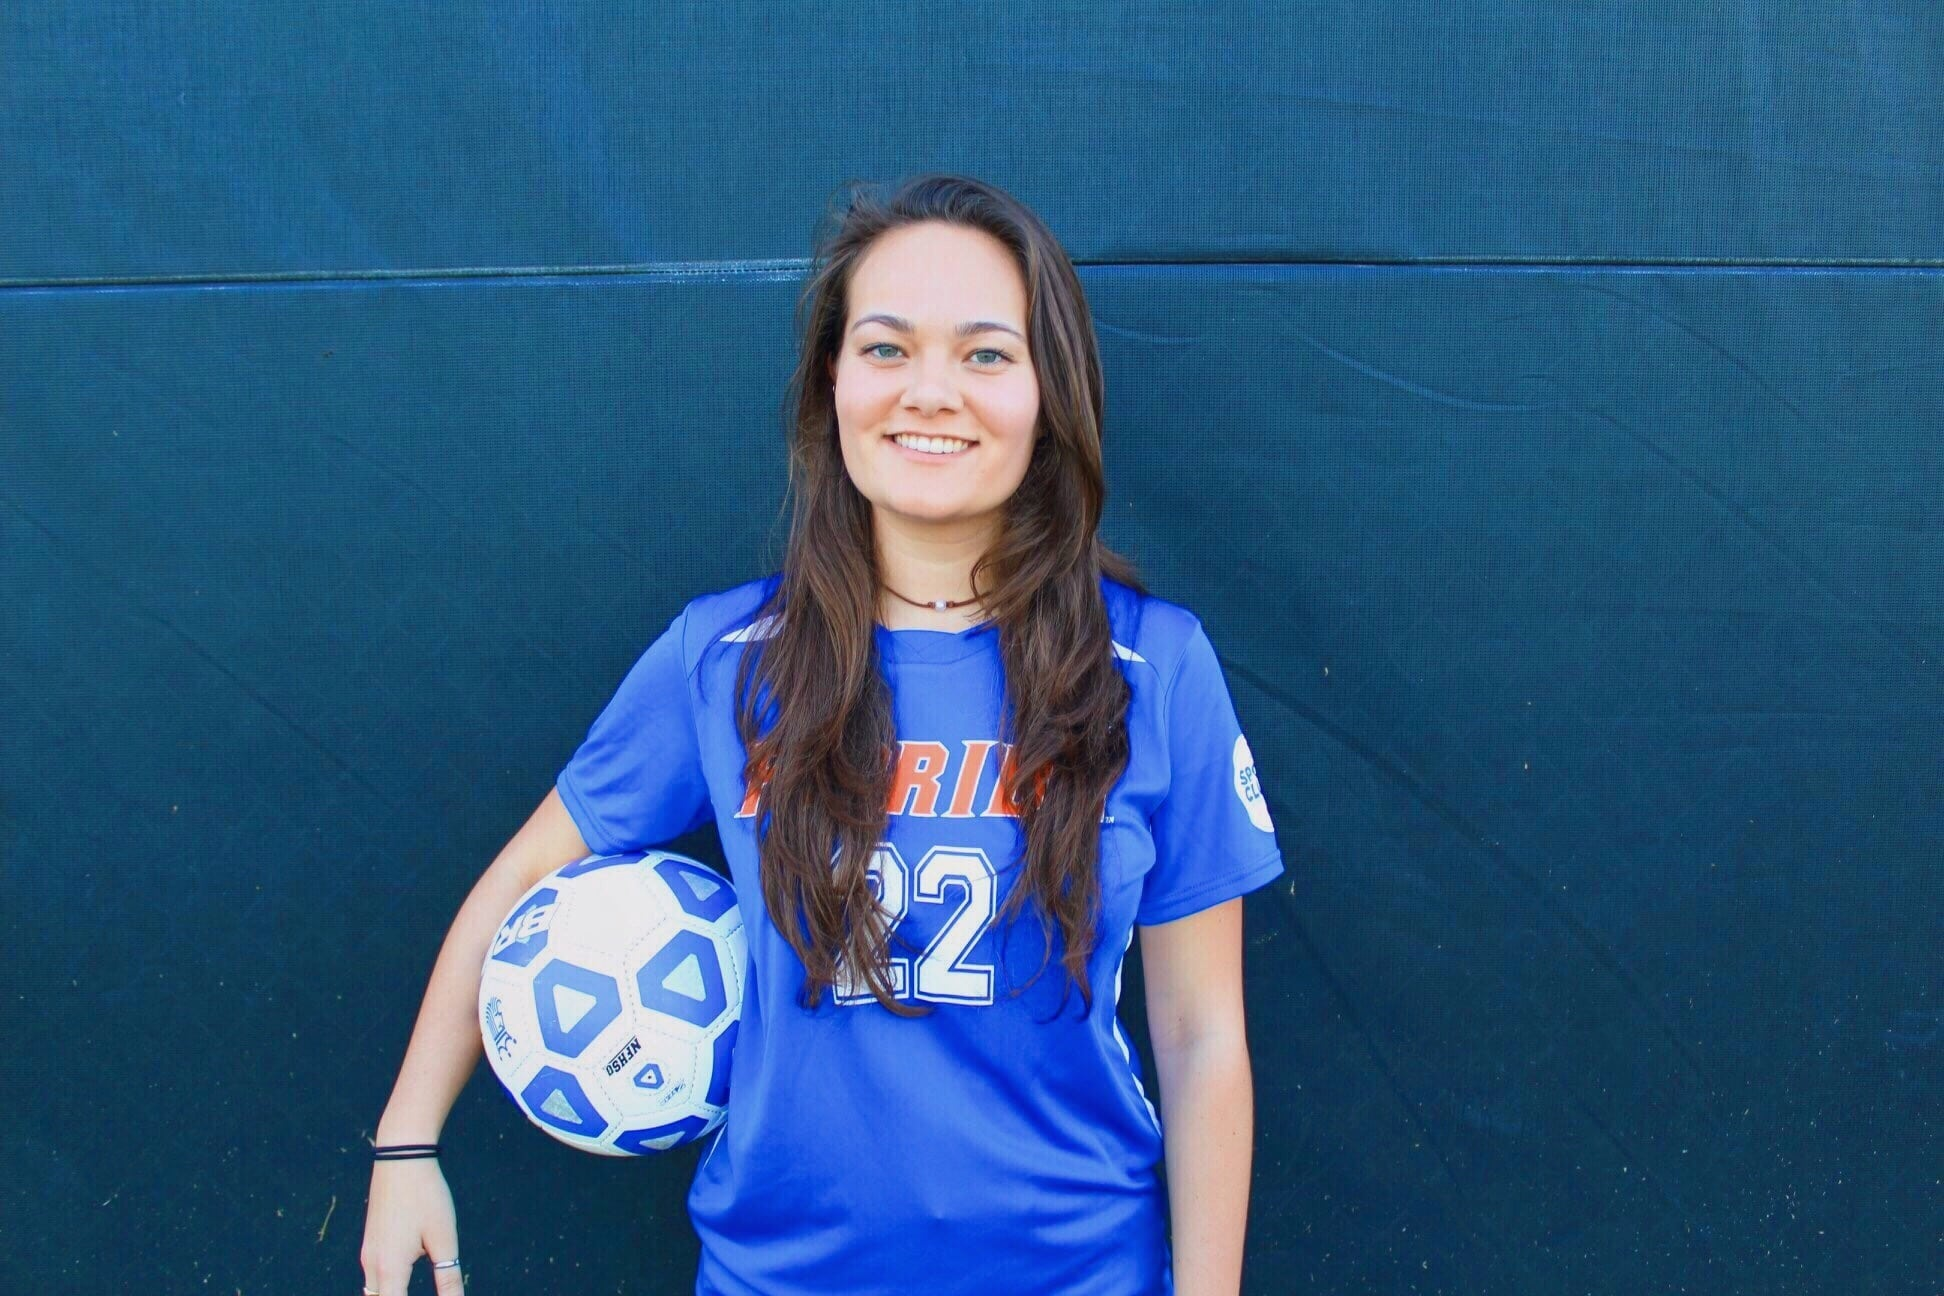 Jenna Griffiths wears a UF soccer jersey and holds a soccer ball under her arm